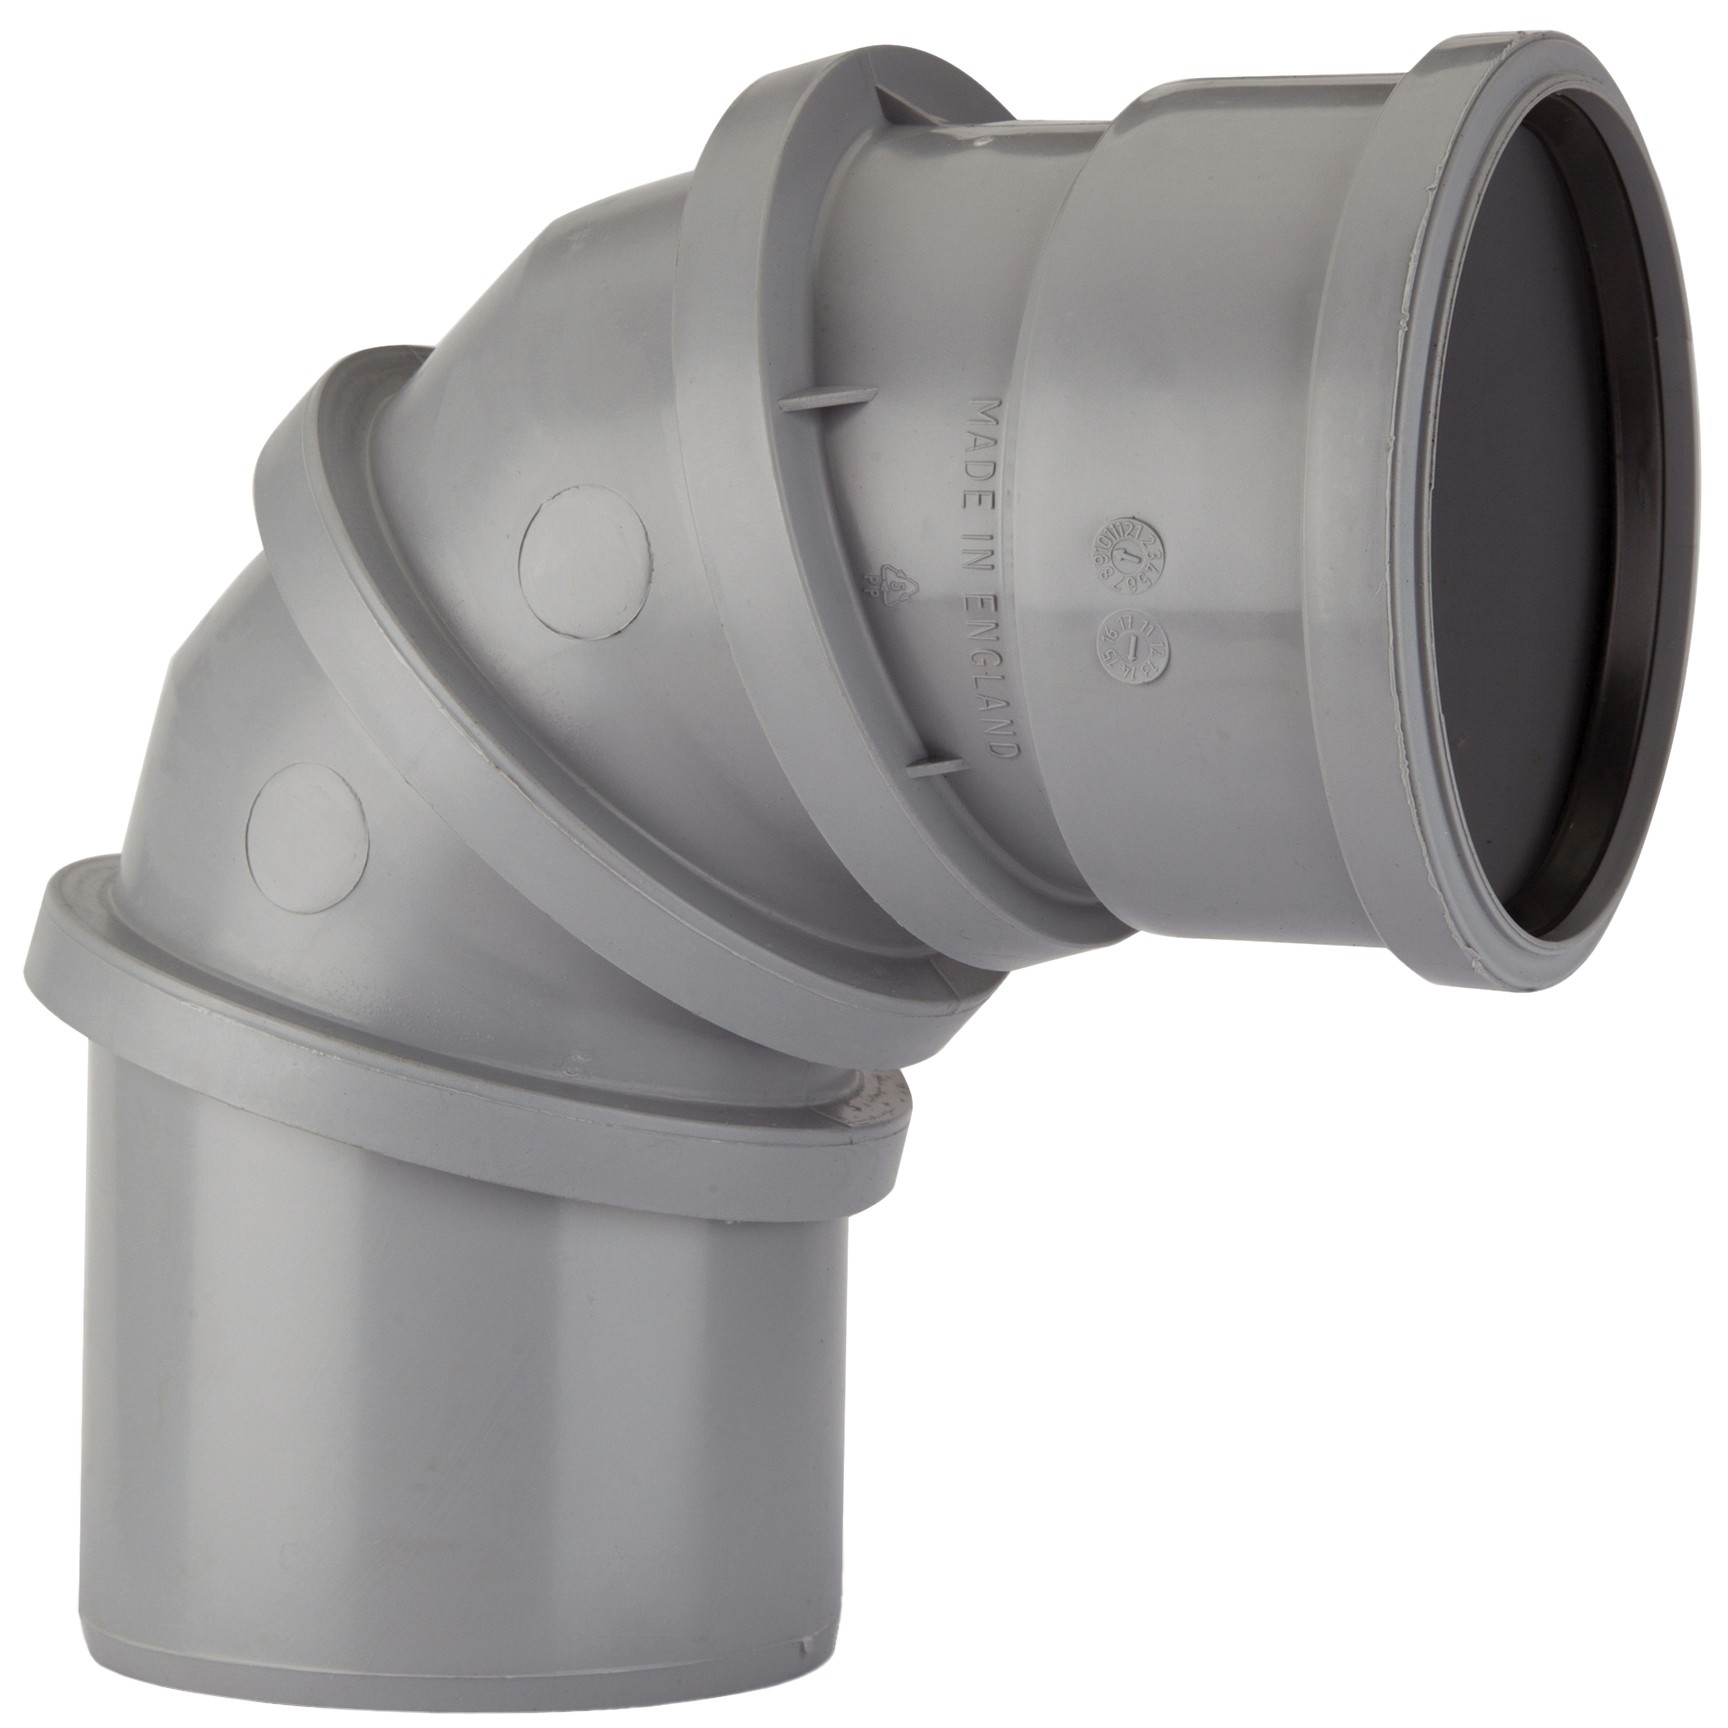 Polypipe 110mm Soil 0-90 Degree Adjustable Bend - Grey